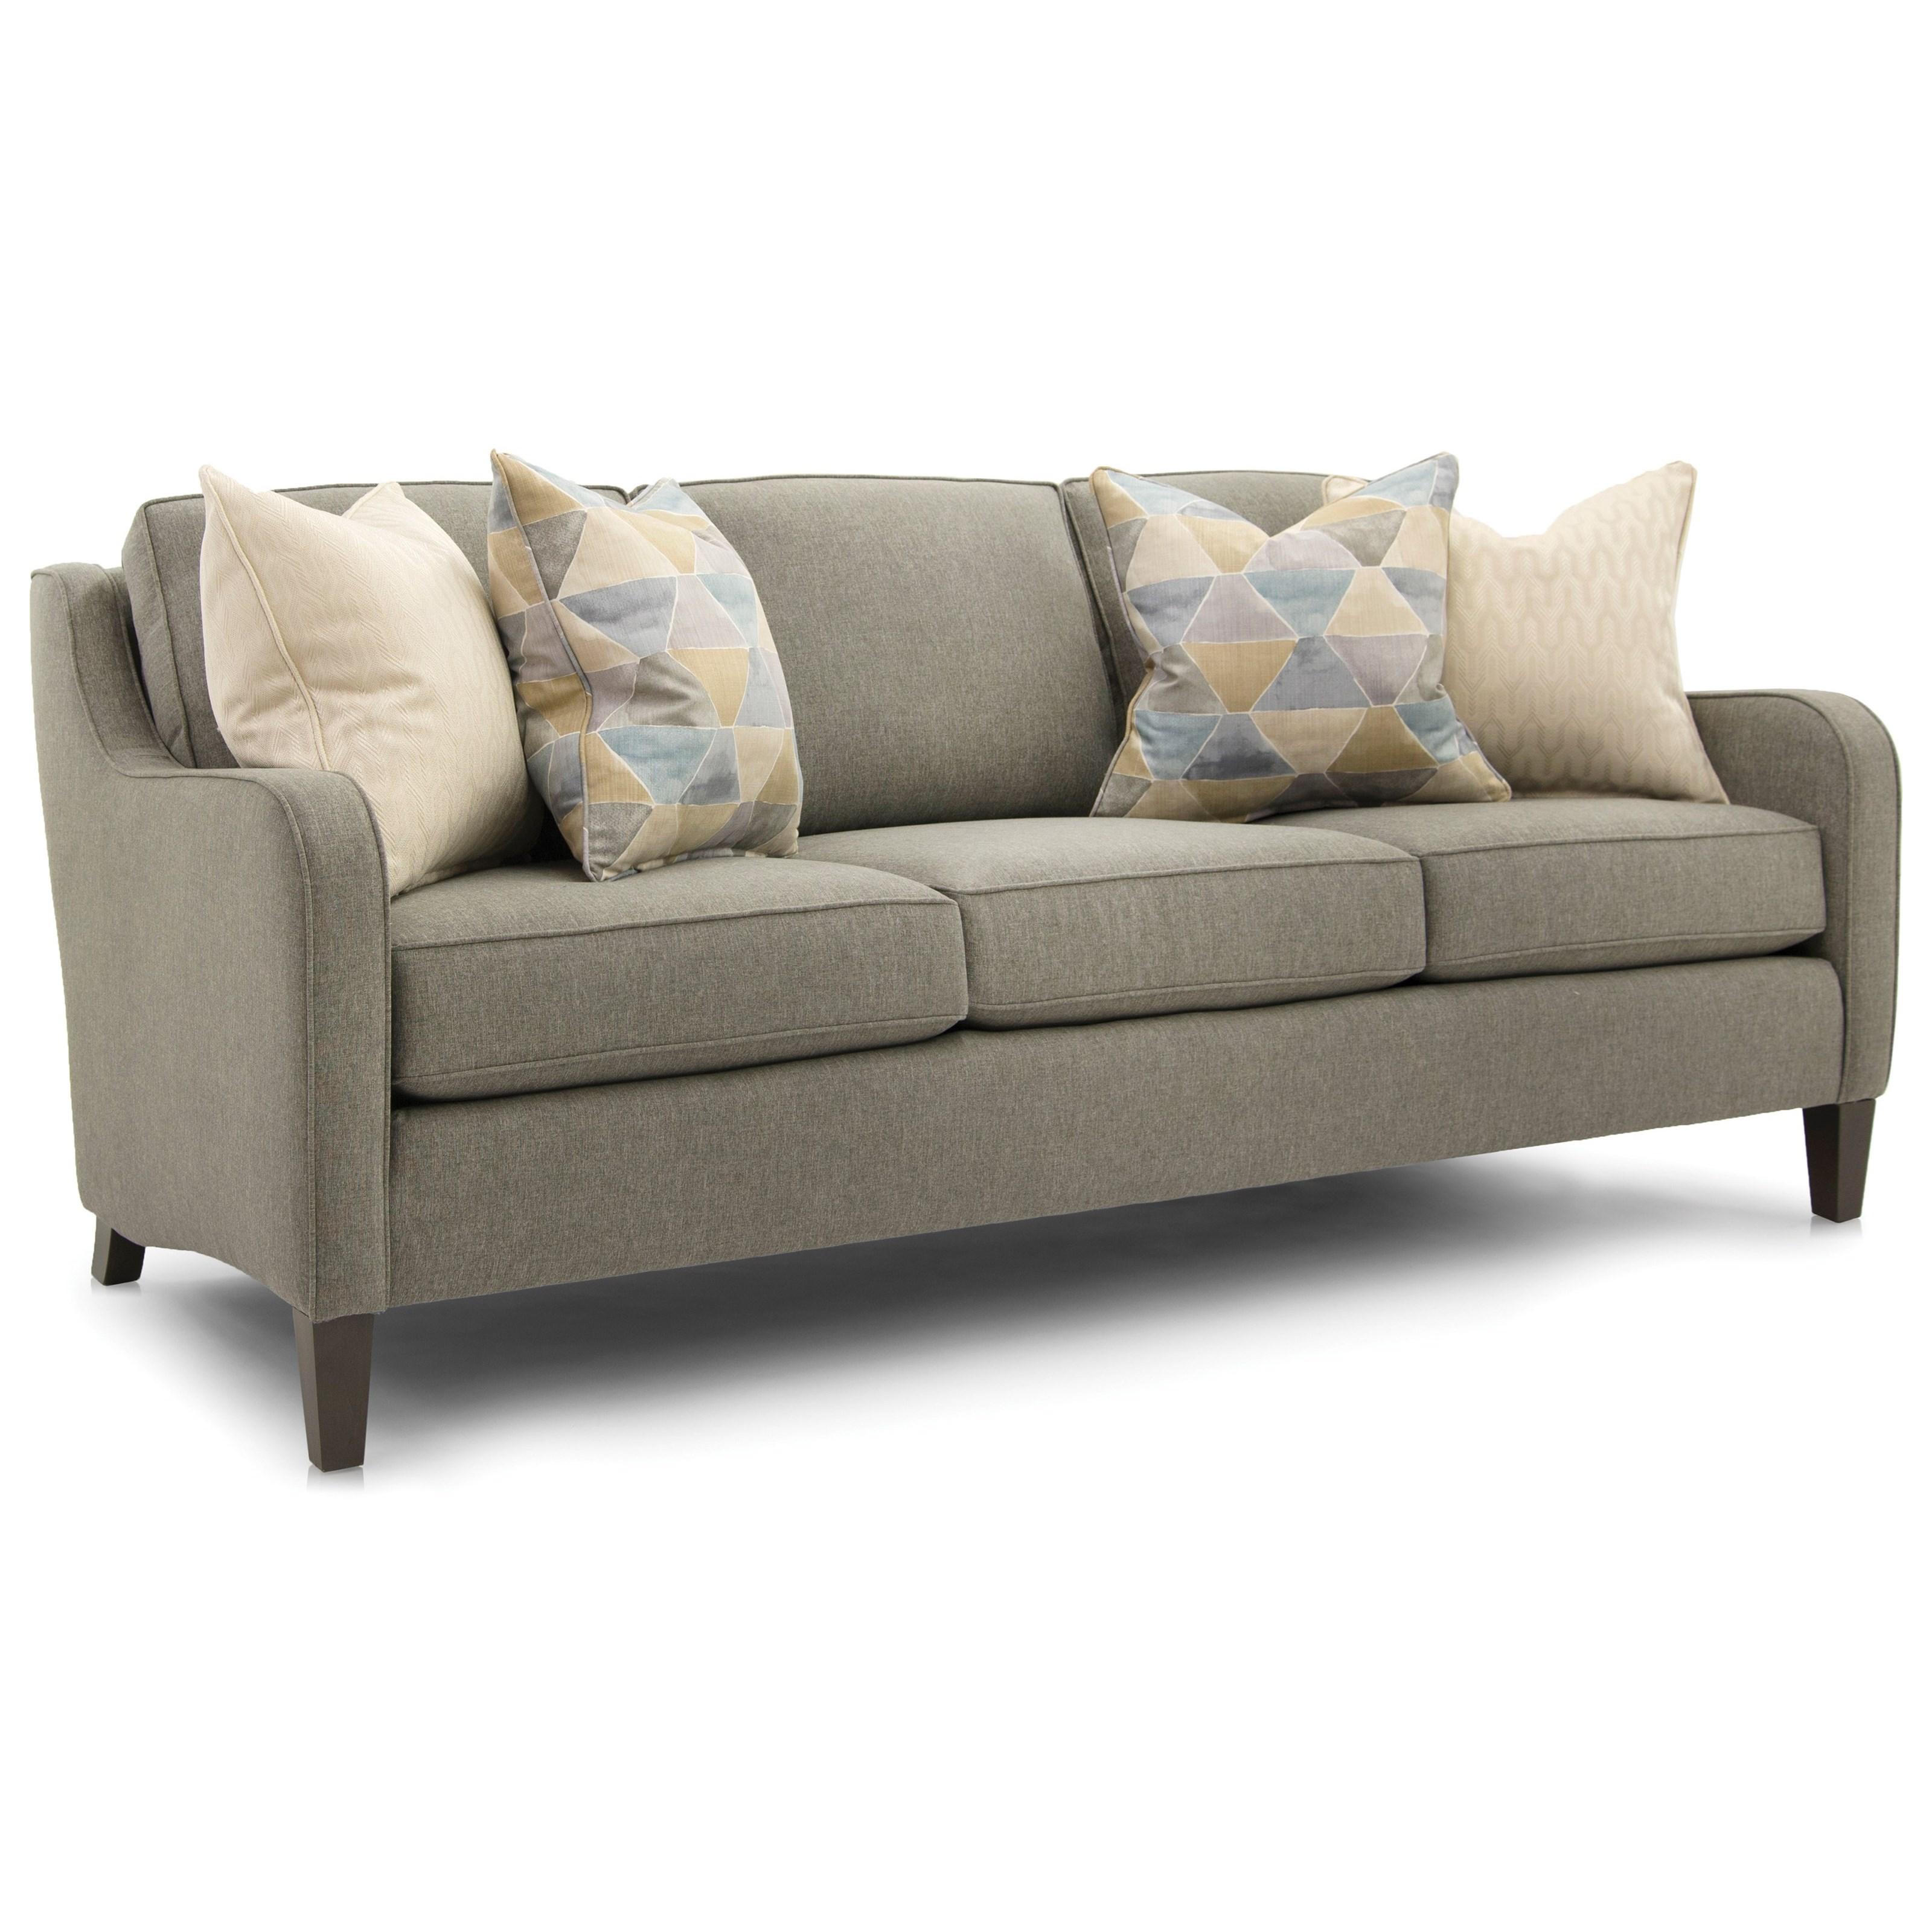 252 Full Size Sofa by Smith Brothers at Mueller Furniture